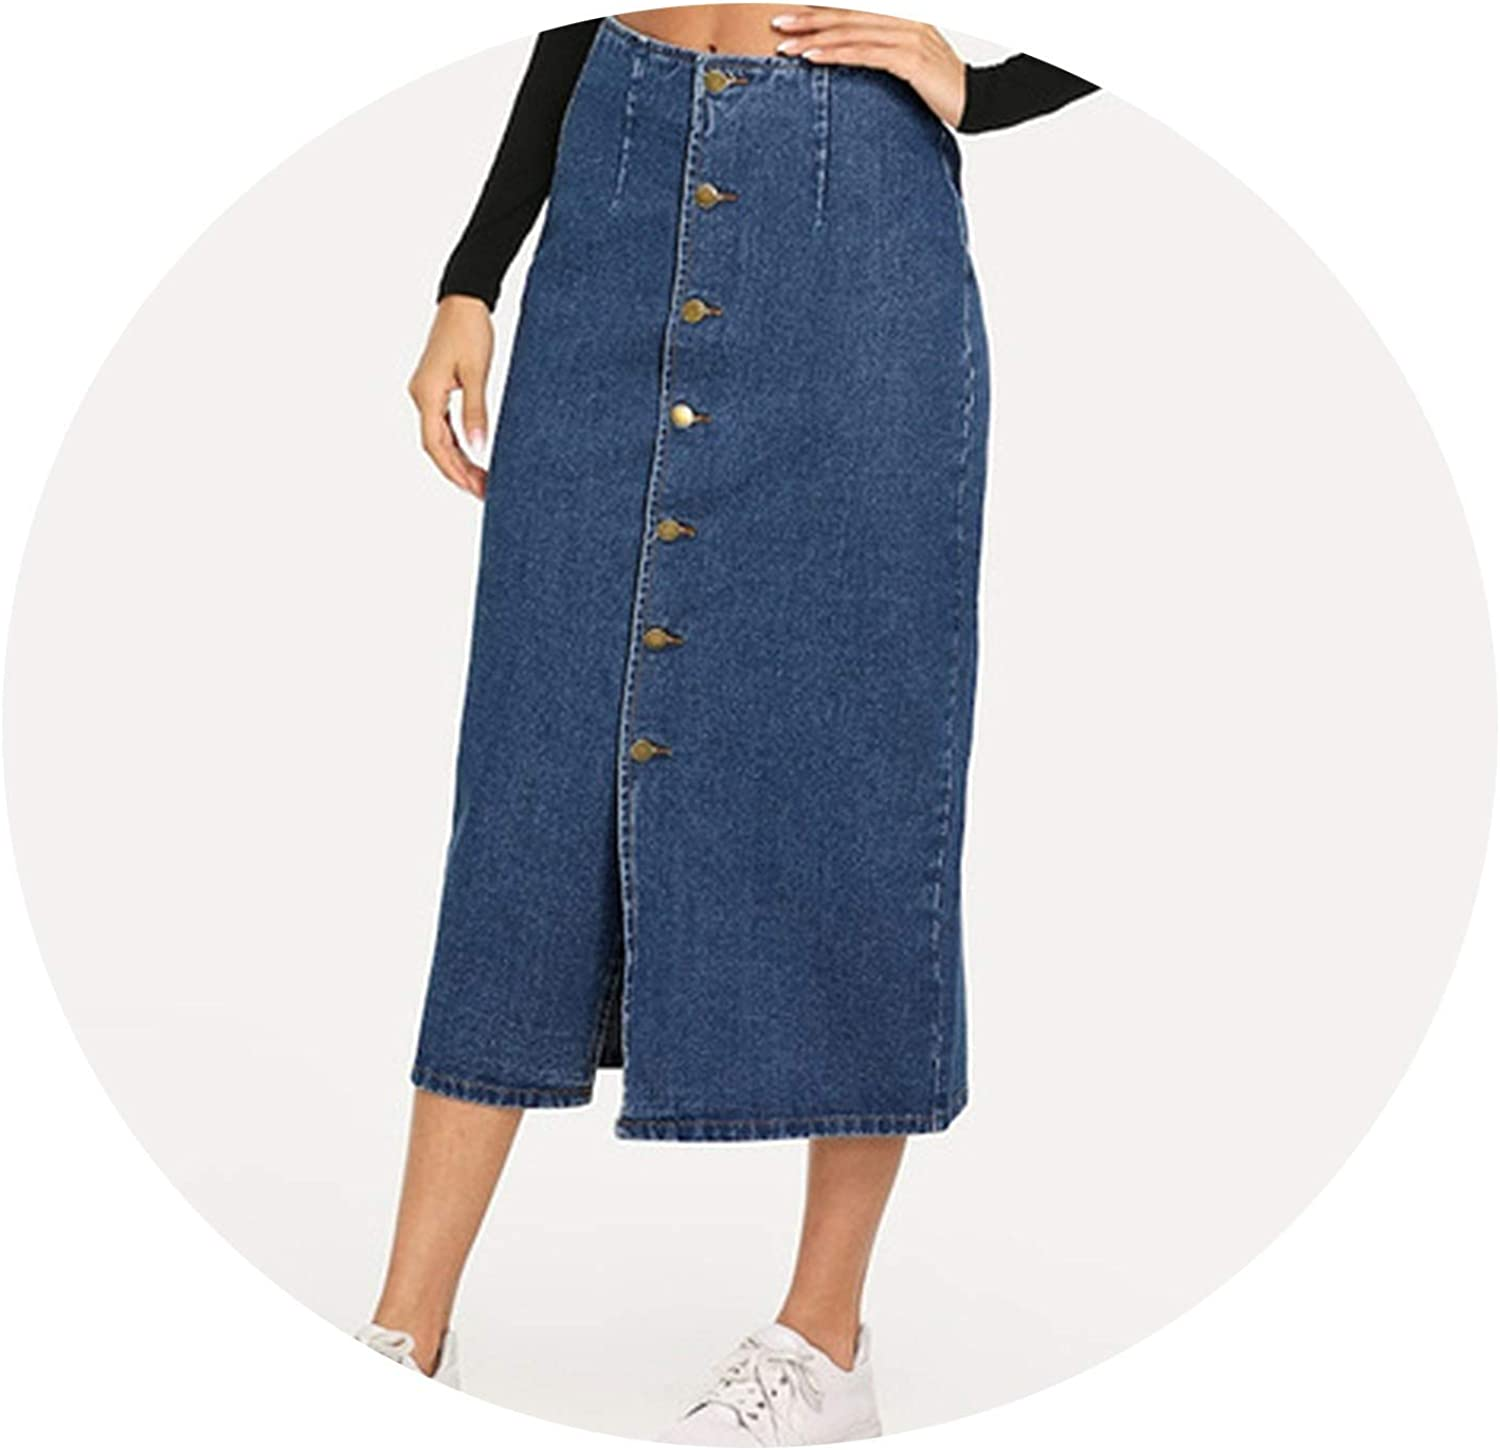 colorfulspace Slit Front Button Up Denim Shift Skirt Casual Mid Waist Women Morden Lady Street Wear Skirts